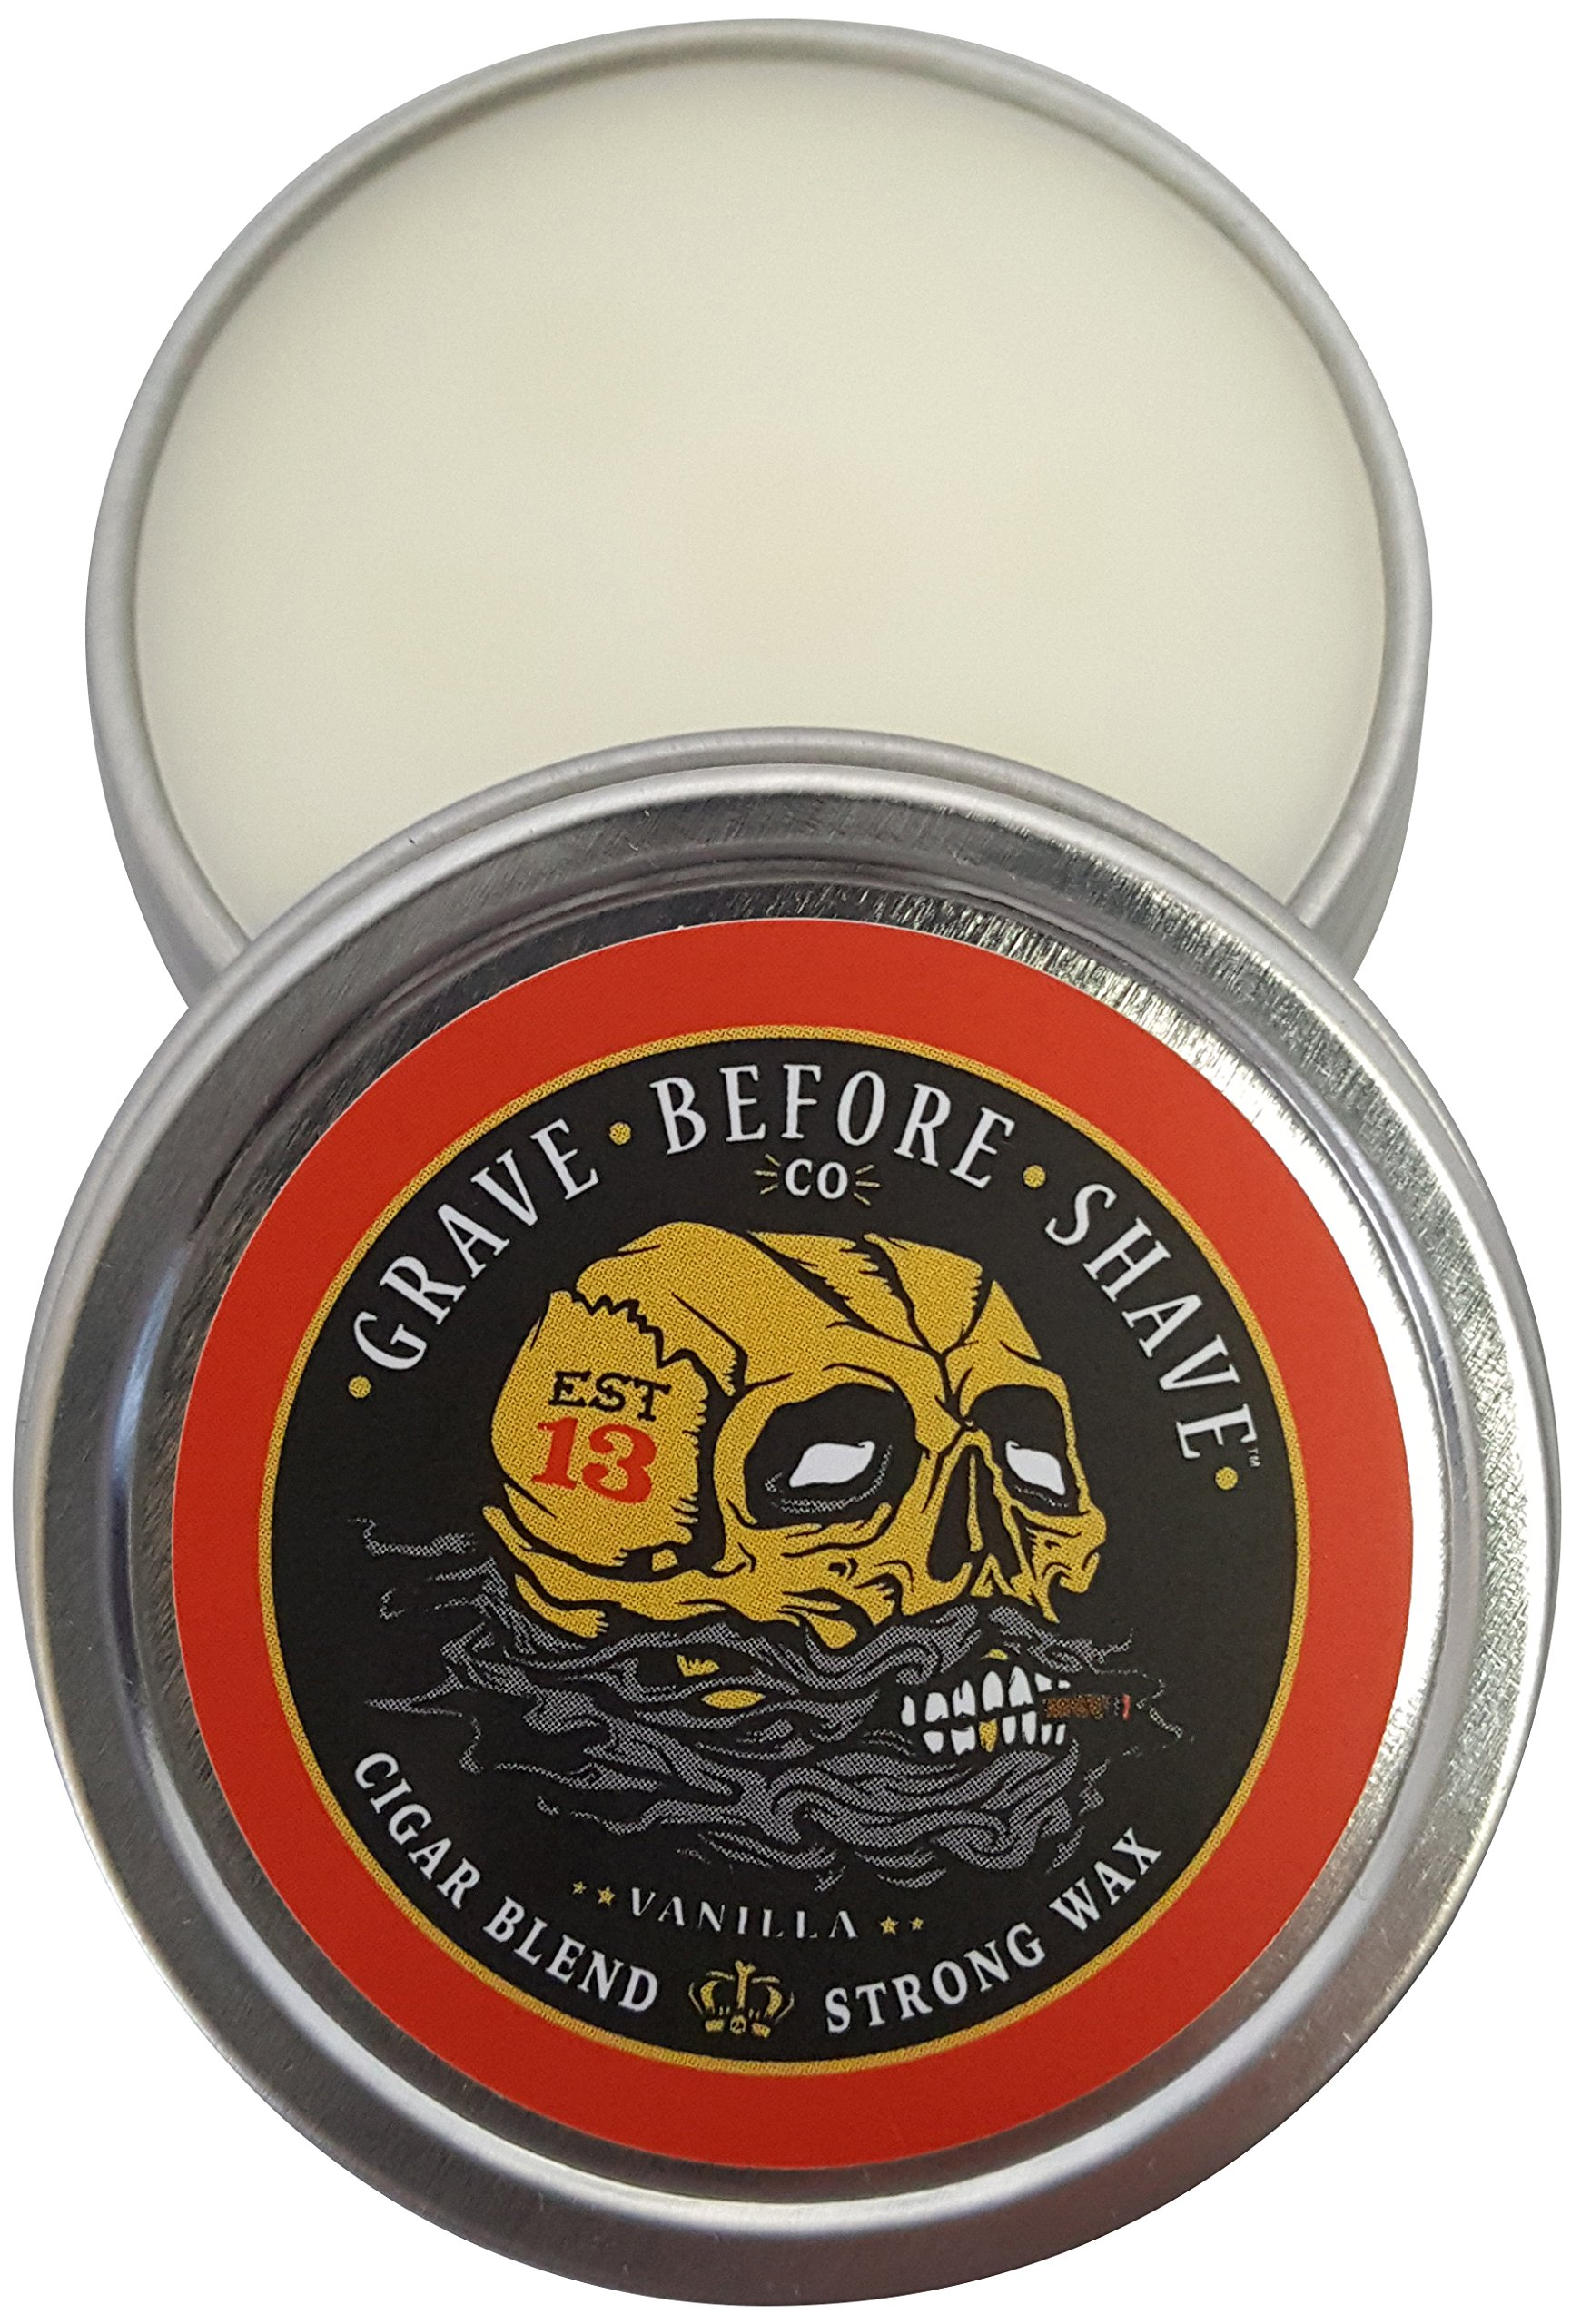 Fisticuffs Cigar Blend Strong Hold Mustache Wax & Moguard combo by Fisticuffs (Image #2)